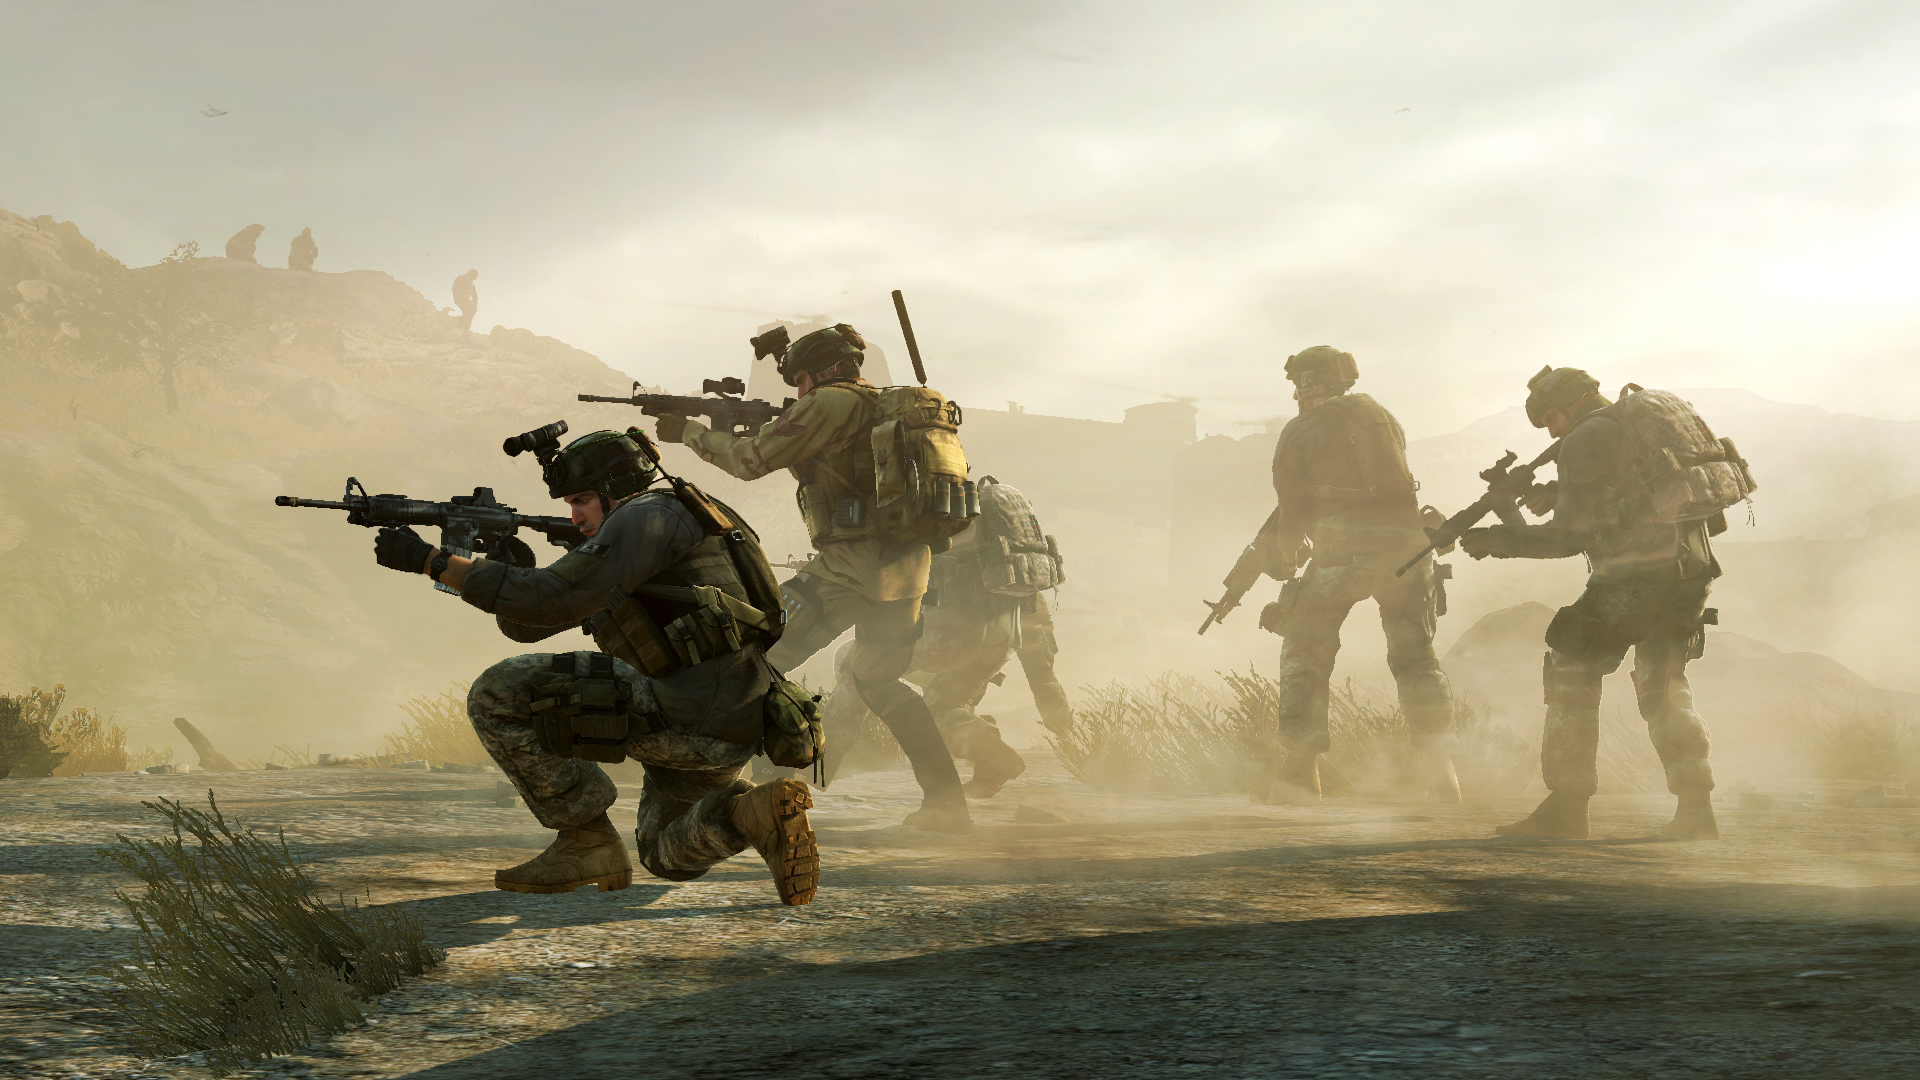 Mw3 3d Wallpapers Games Medal Of Honor Wallpapers 7941 Wallpaper